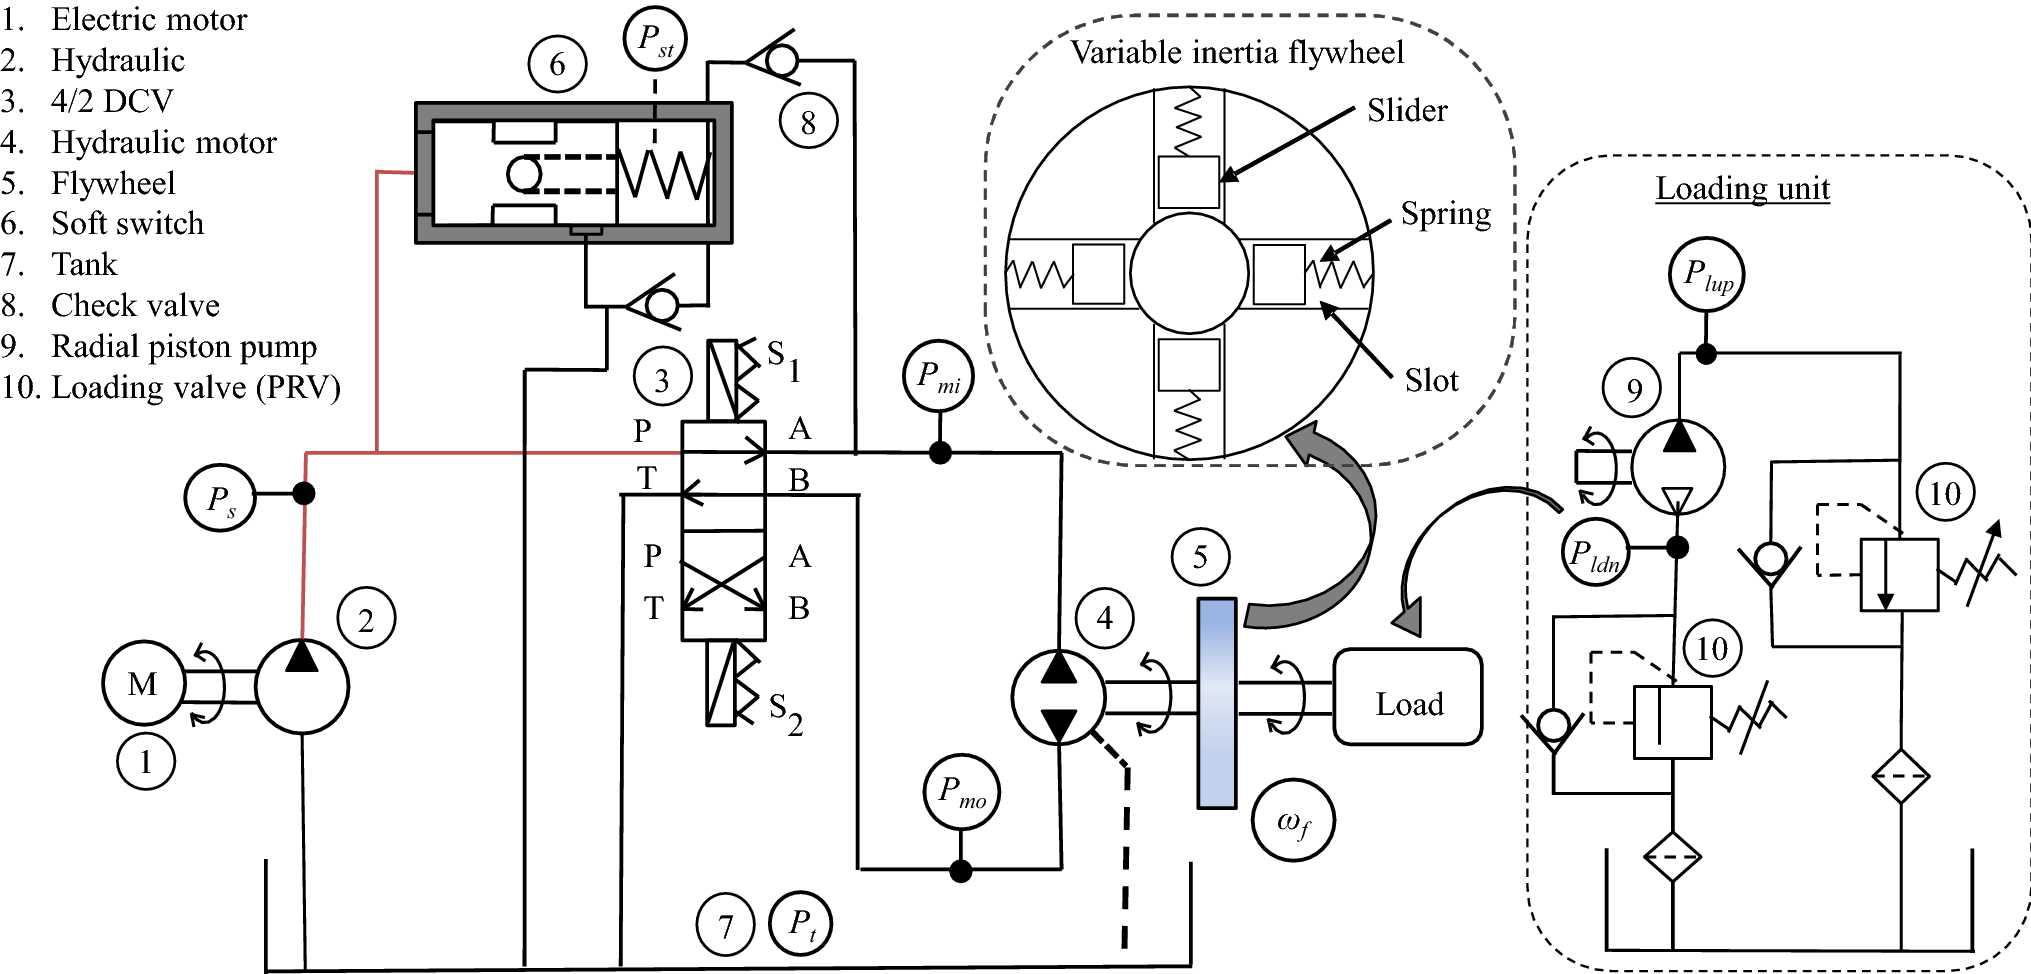 Influence of variable inertia flywheel and soft switching on